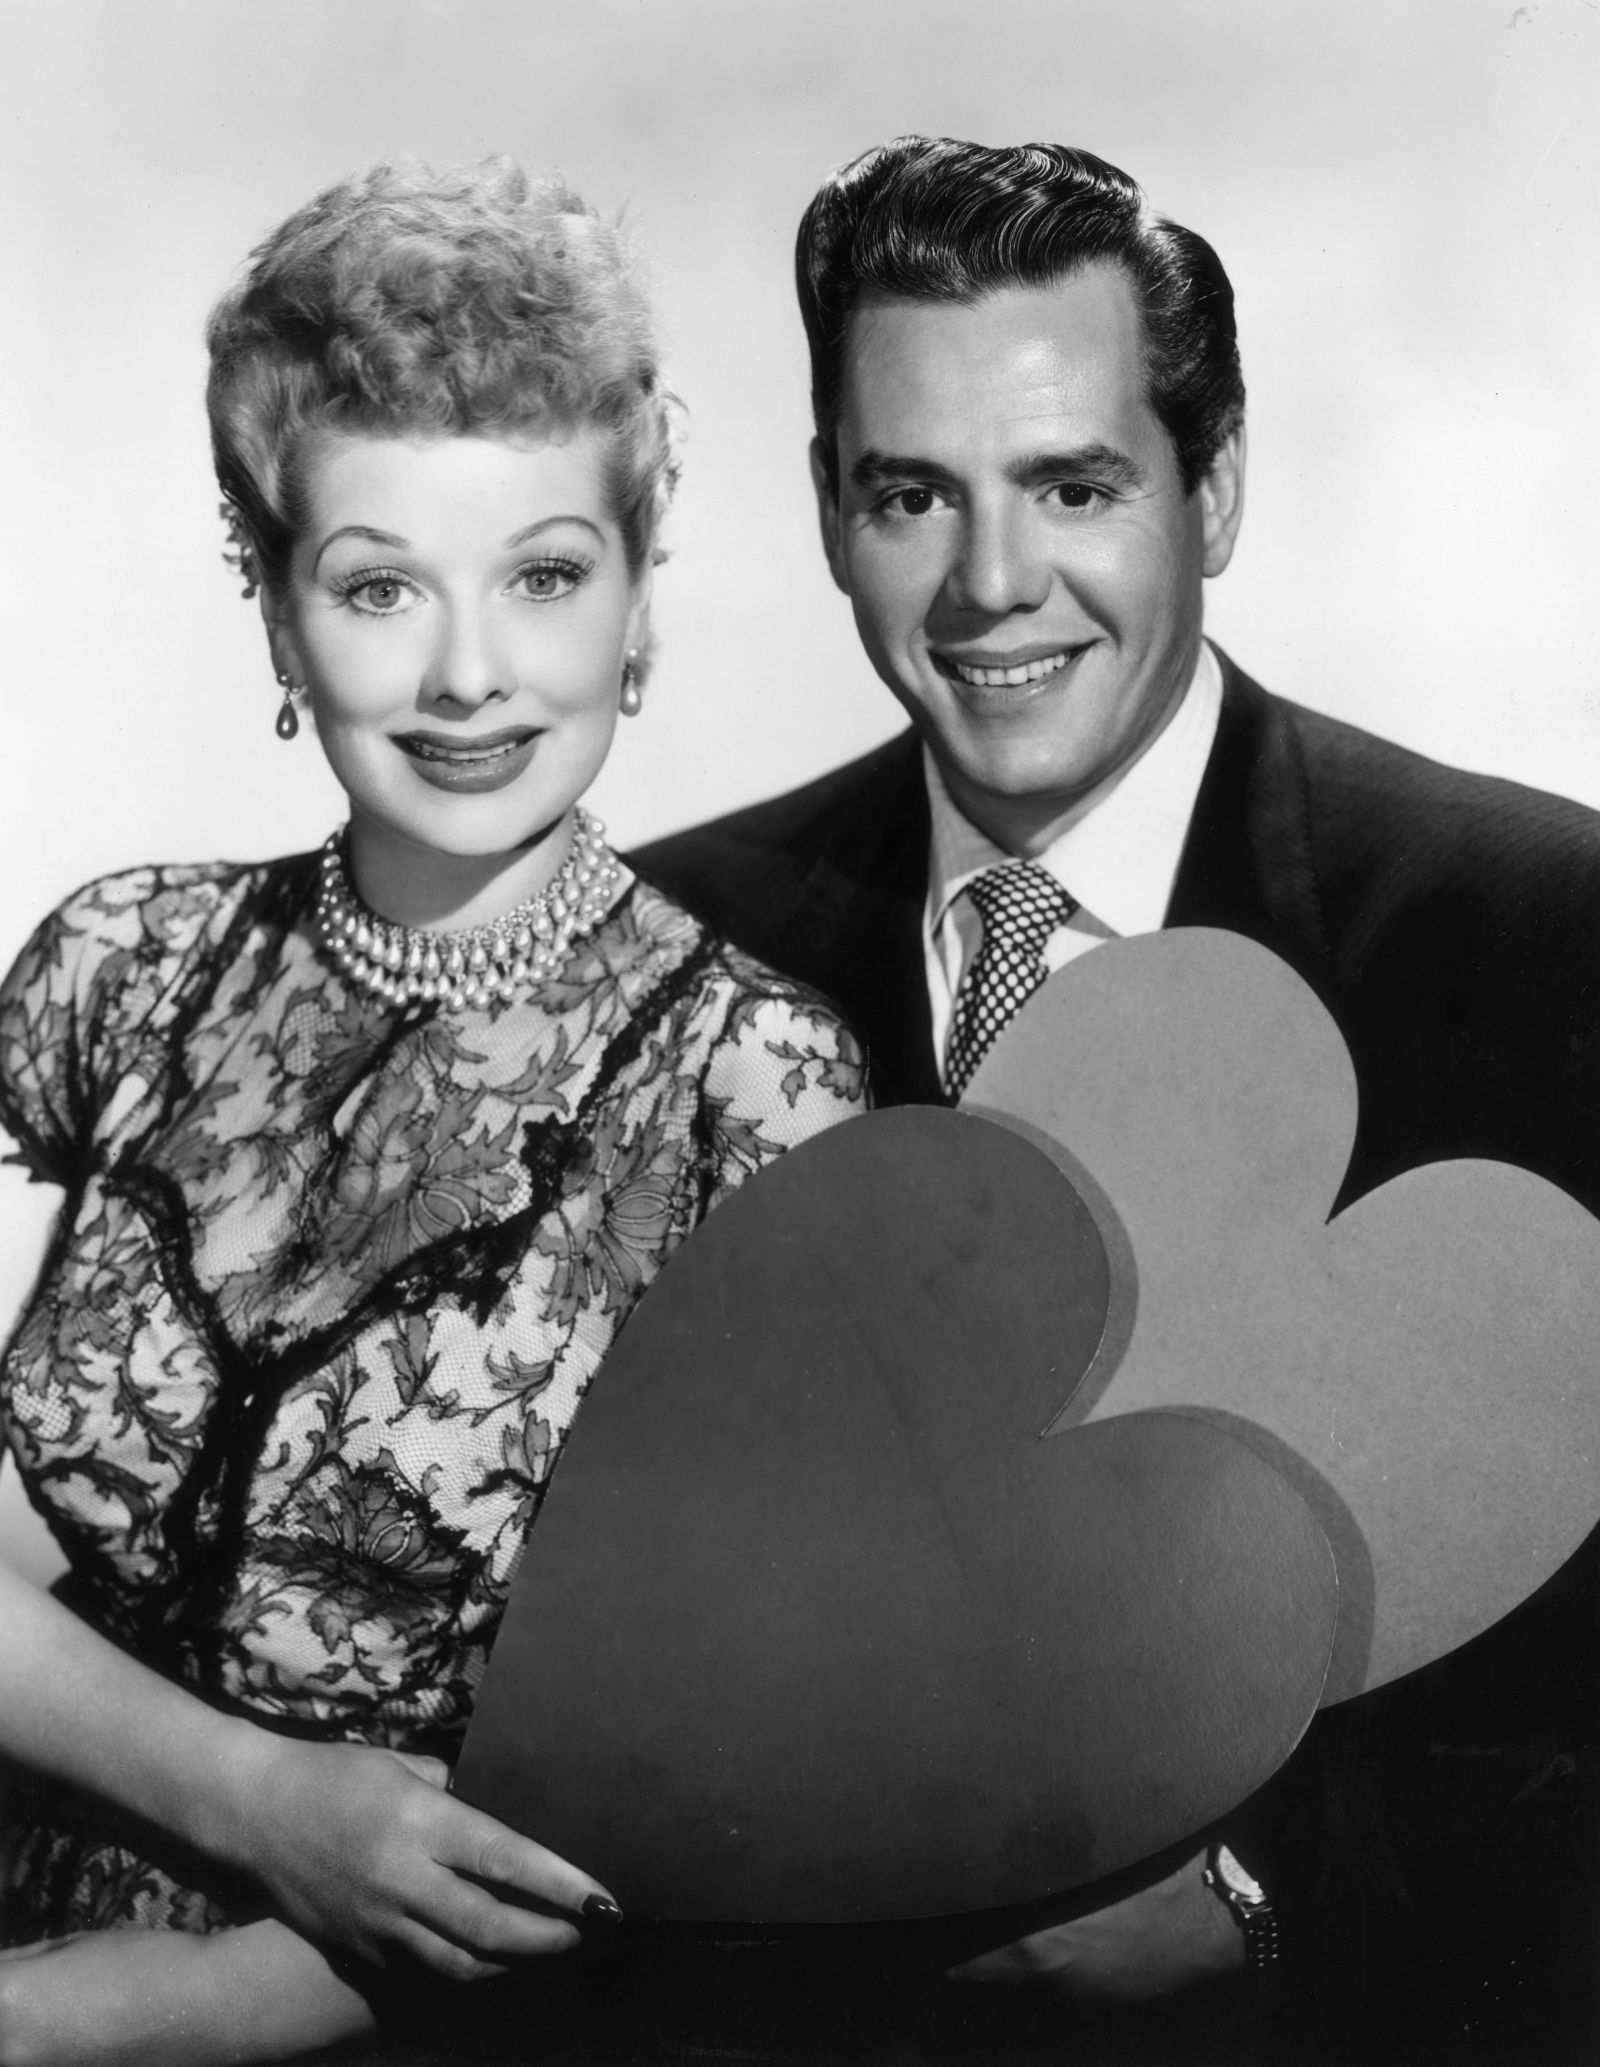 At the End of His Life, Desi Arnaz Wrote the Sweetest Thing About Lucille Ball